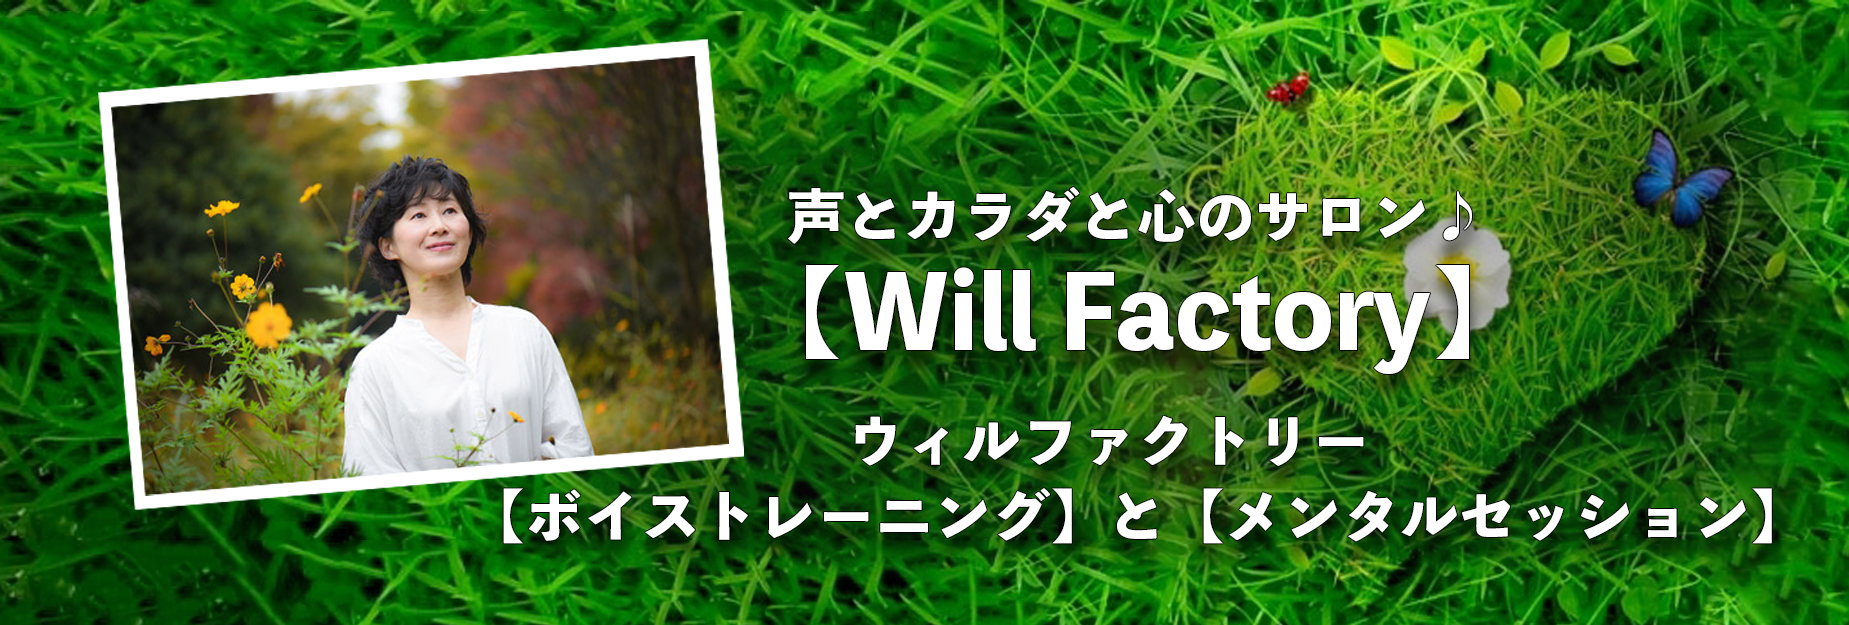 Will Factory